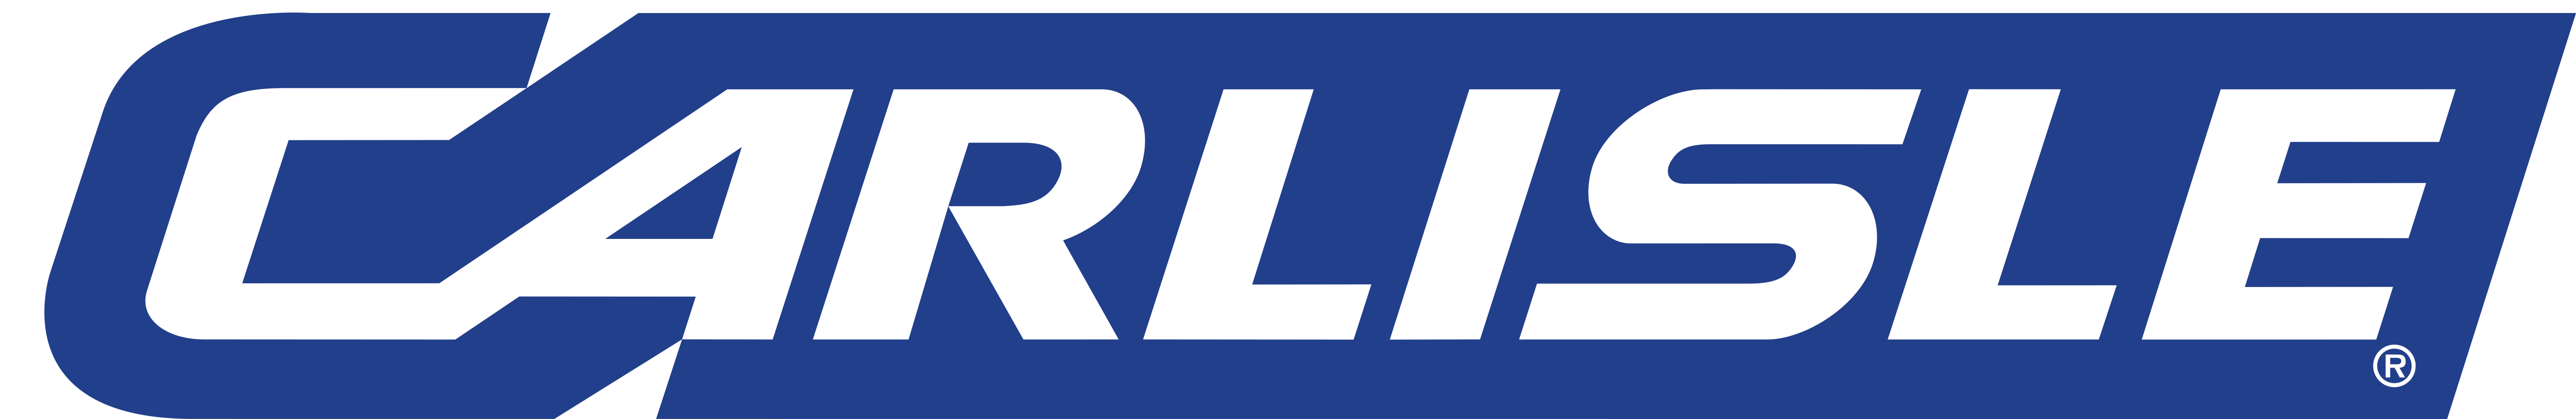 Carlisle Group Logo